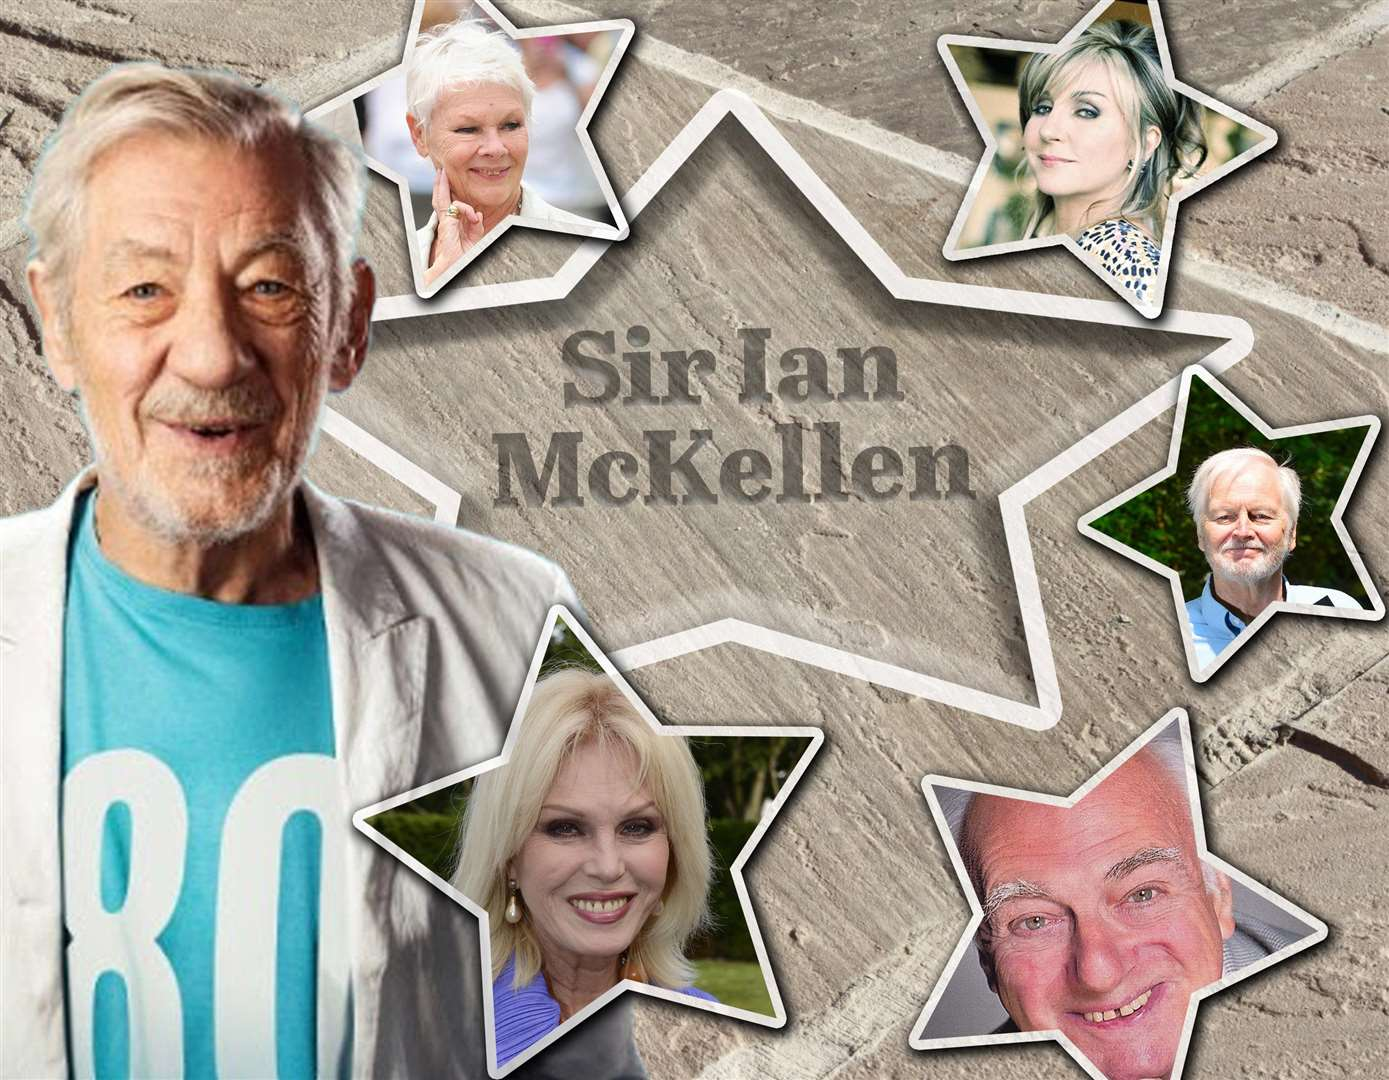 Sir Ian McKellen, Dame Judi Dench, Lesley Garrett, Ian Lavender, Roy Hudd and Joanna Lumley are among the performers identified for the Theatre Royal Star Trail in Bury St Edmunds.